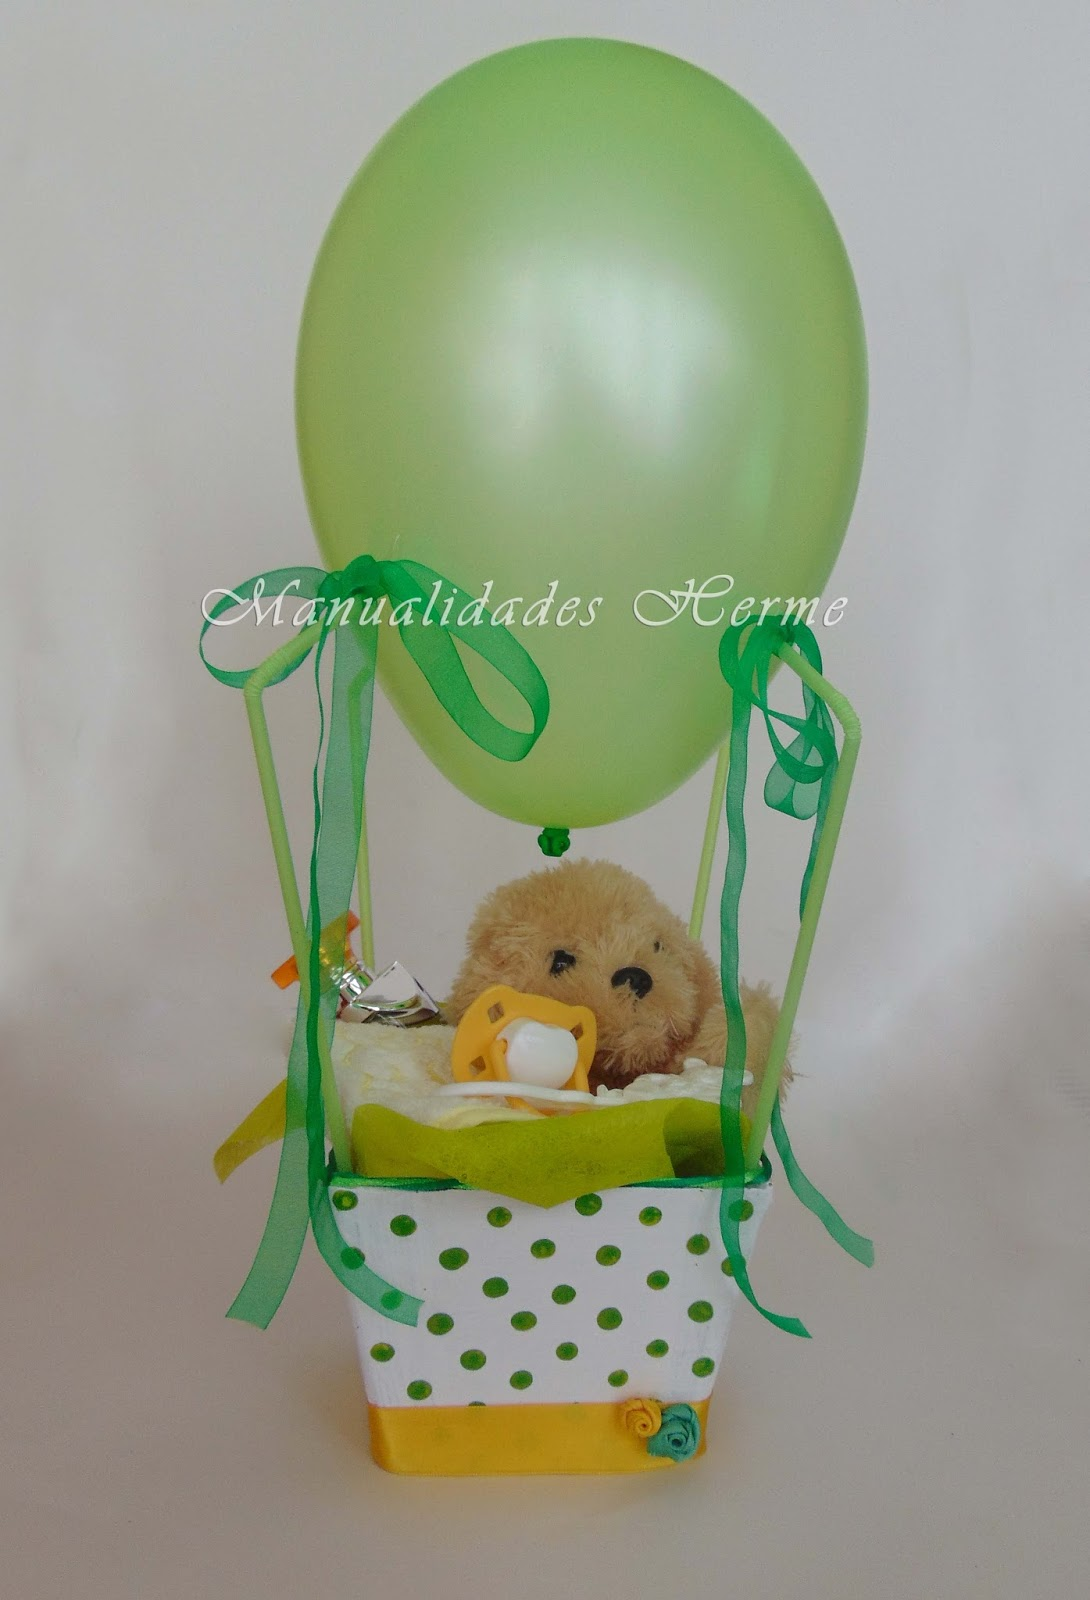 Manualidades herme diy globo para regalo baby shower for Manualidades de decoracion